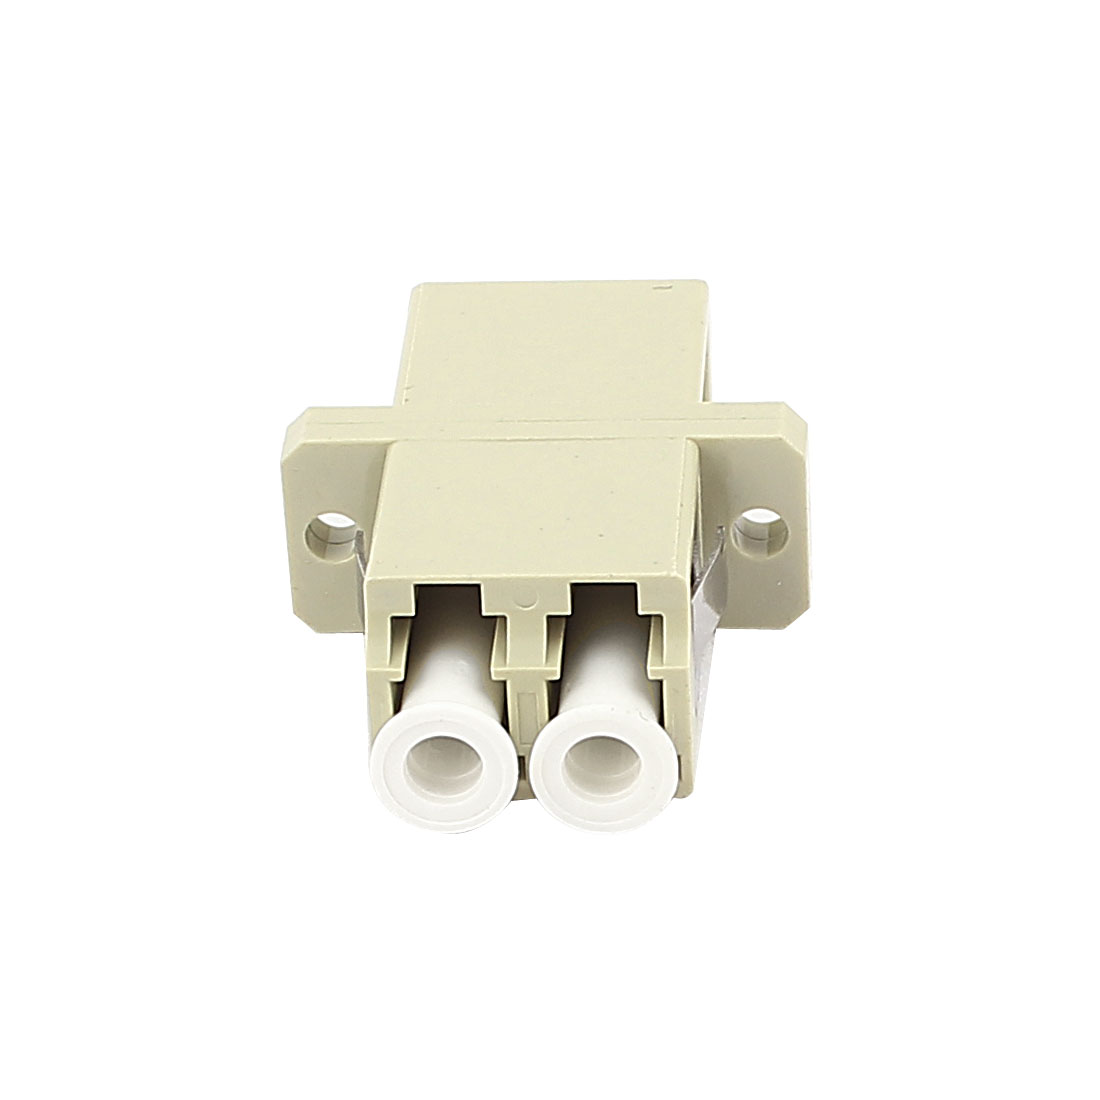 FTTH LC-LC Duplex Multimode Optical Duplexer Bare Fiber Optic Adapter